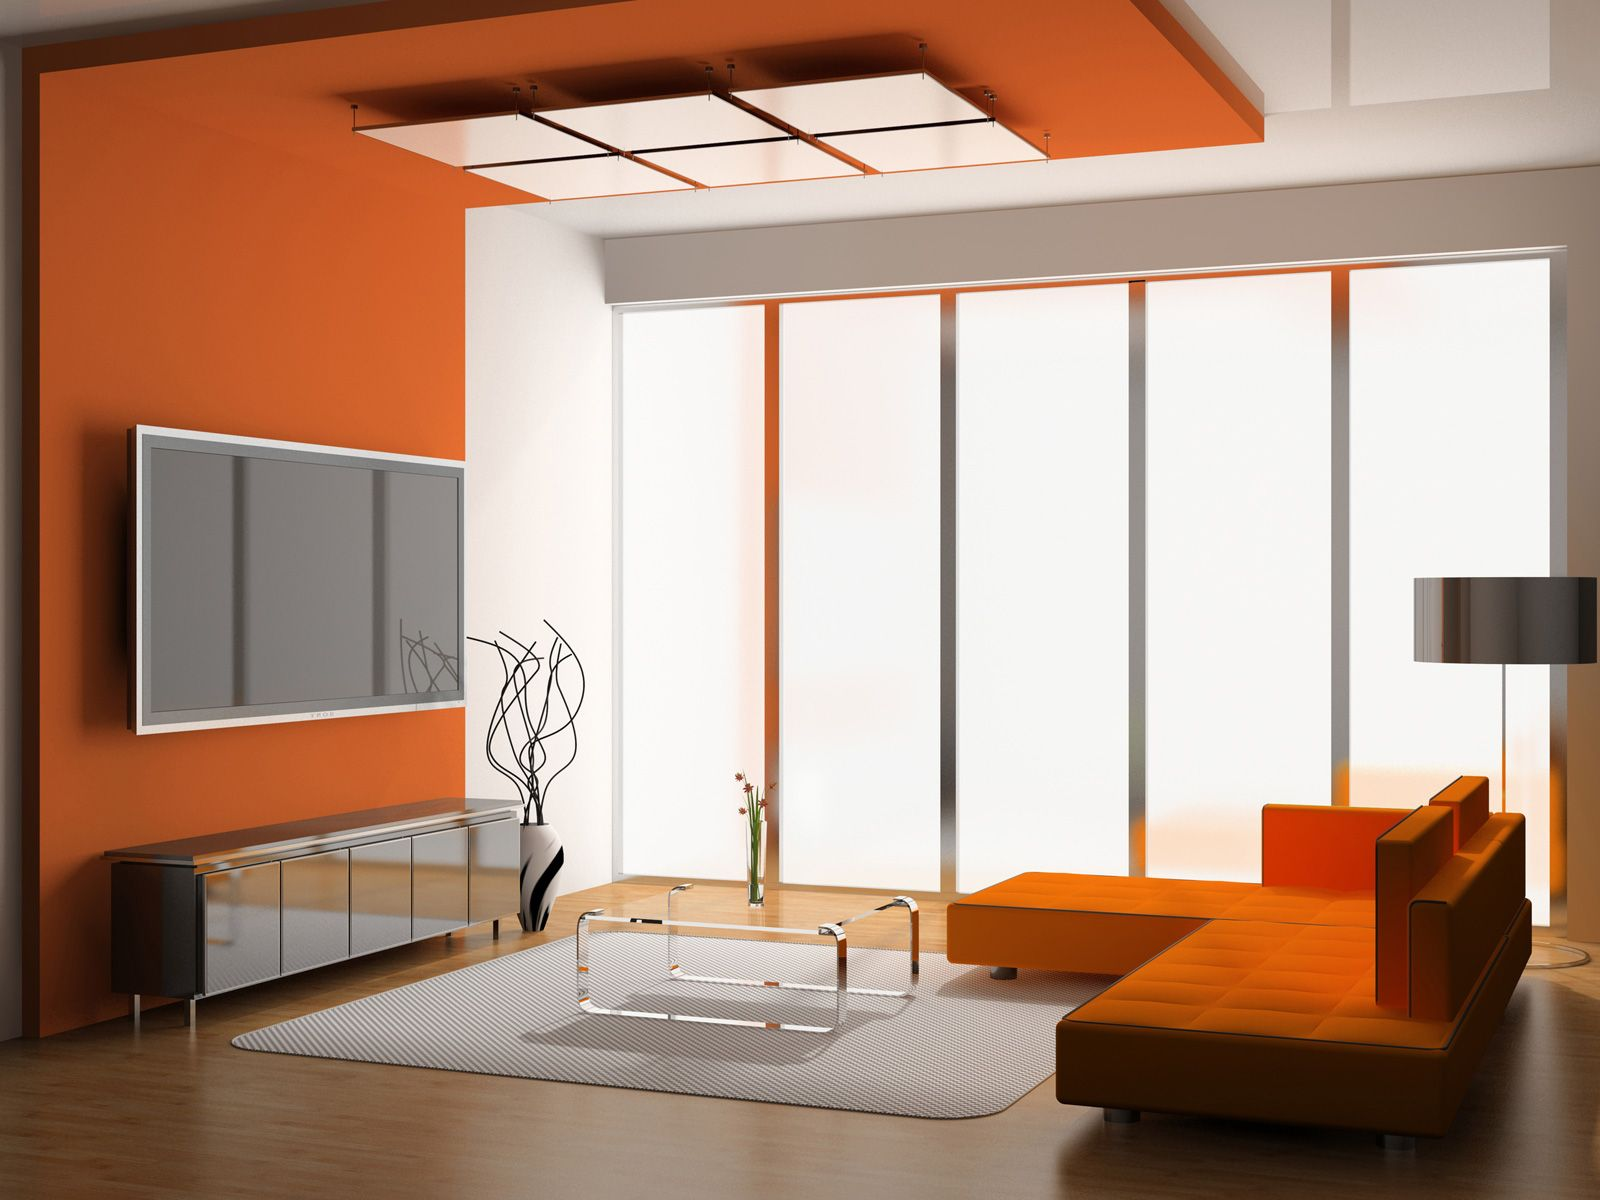 Living Room Design Ideas Orange Walls interior, gorgeous yellow mixed white wall paint best living room